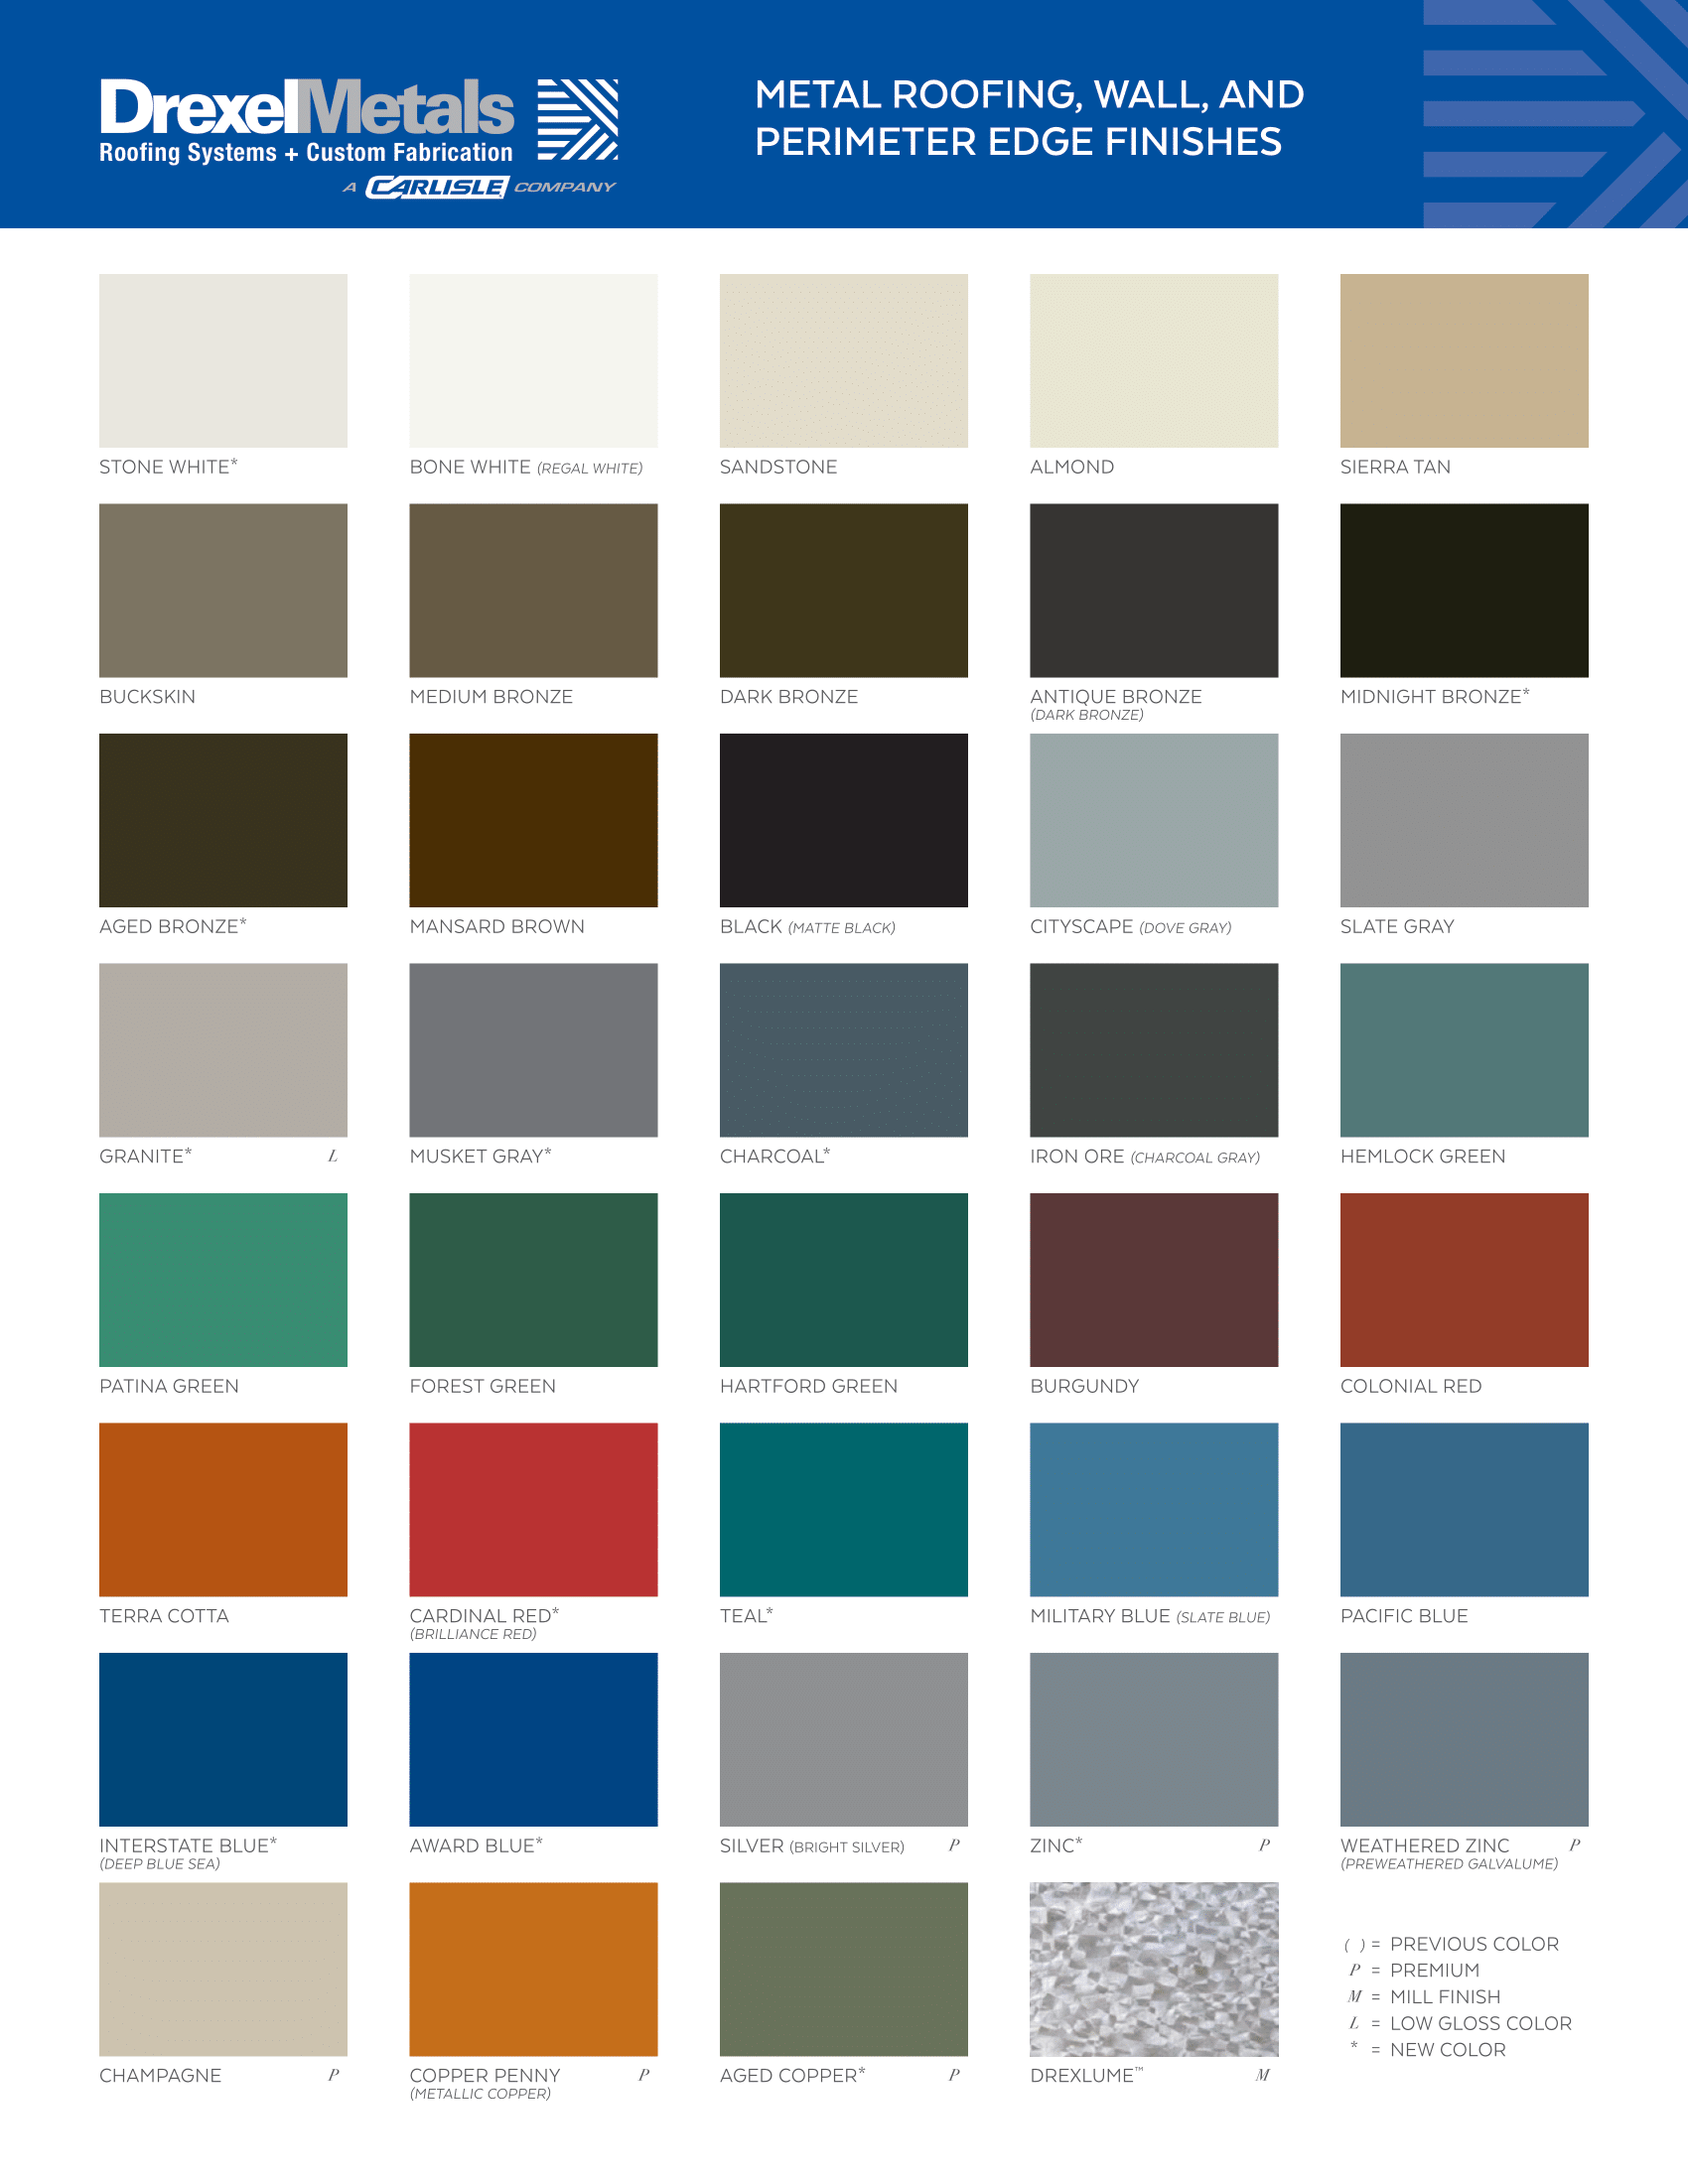 DM-11588 Drexel Metals Metal Roofing and Perimeter Edge Finishes Color Chart 2020-Web Version 09-10-20_page_0001-1.png